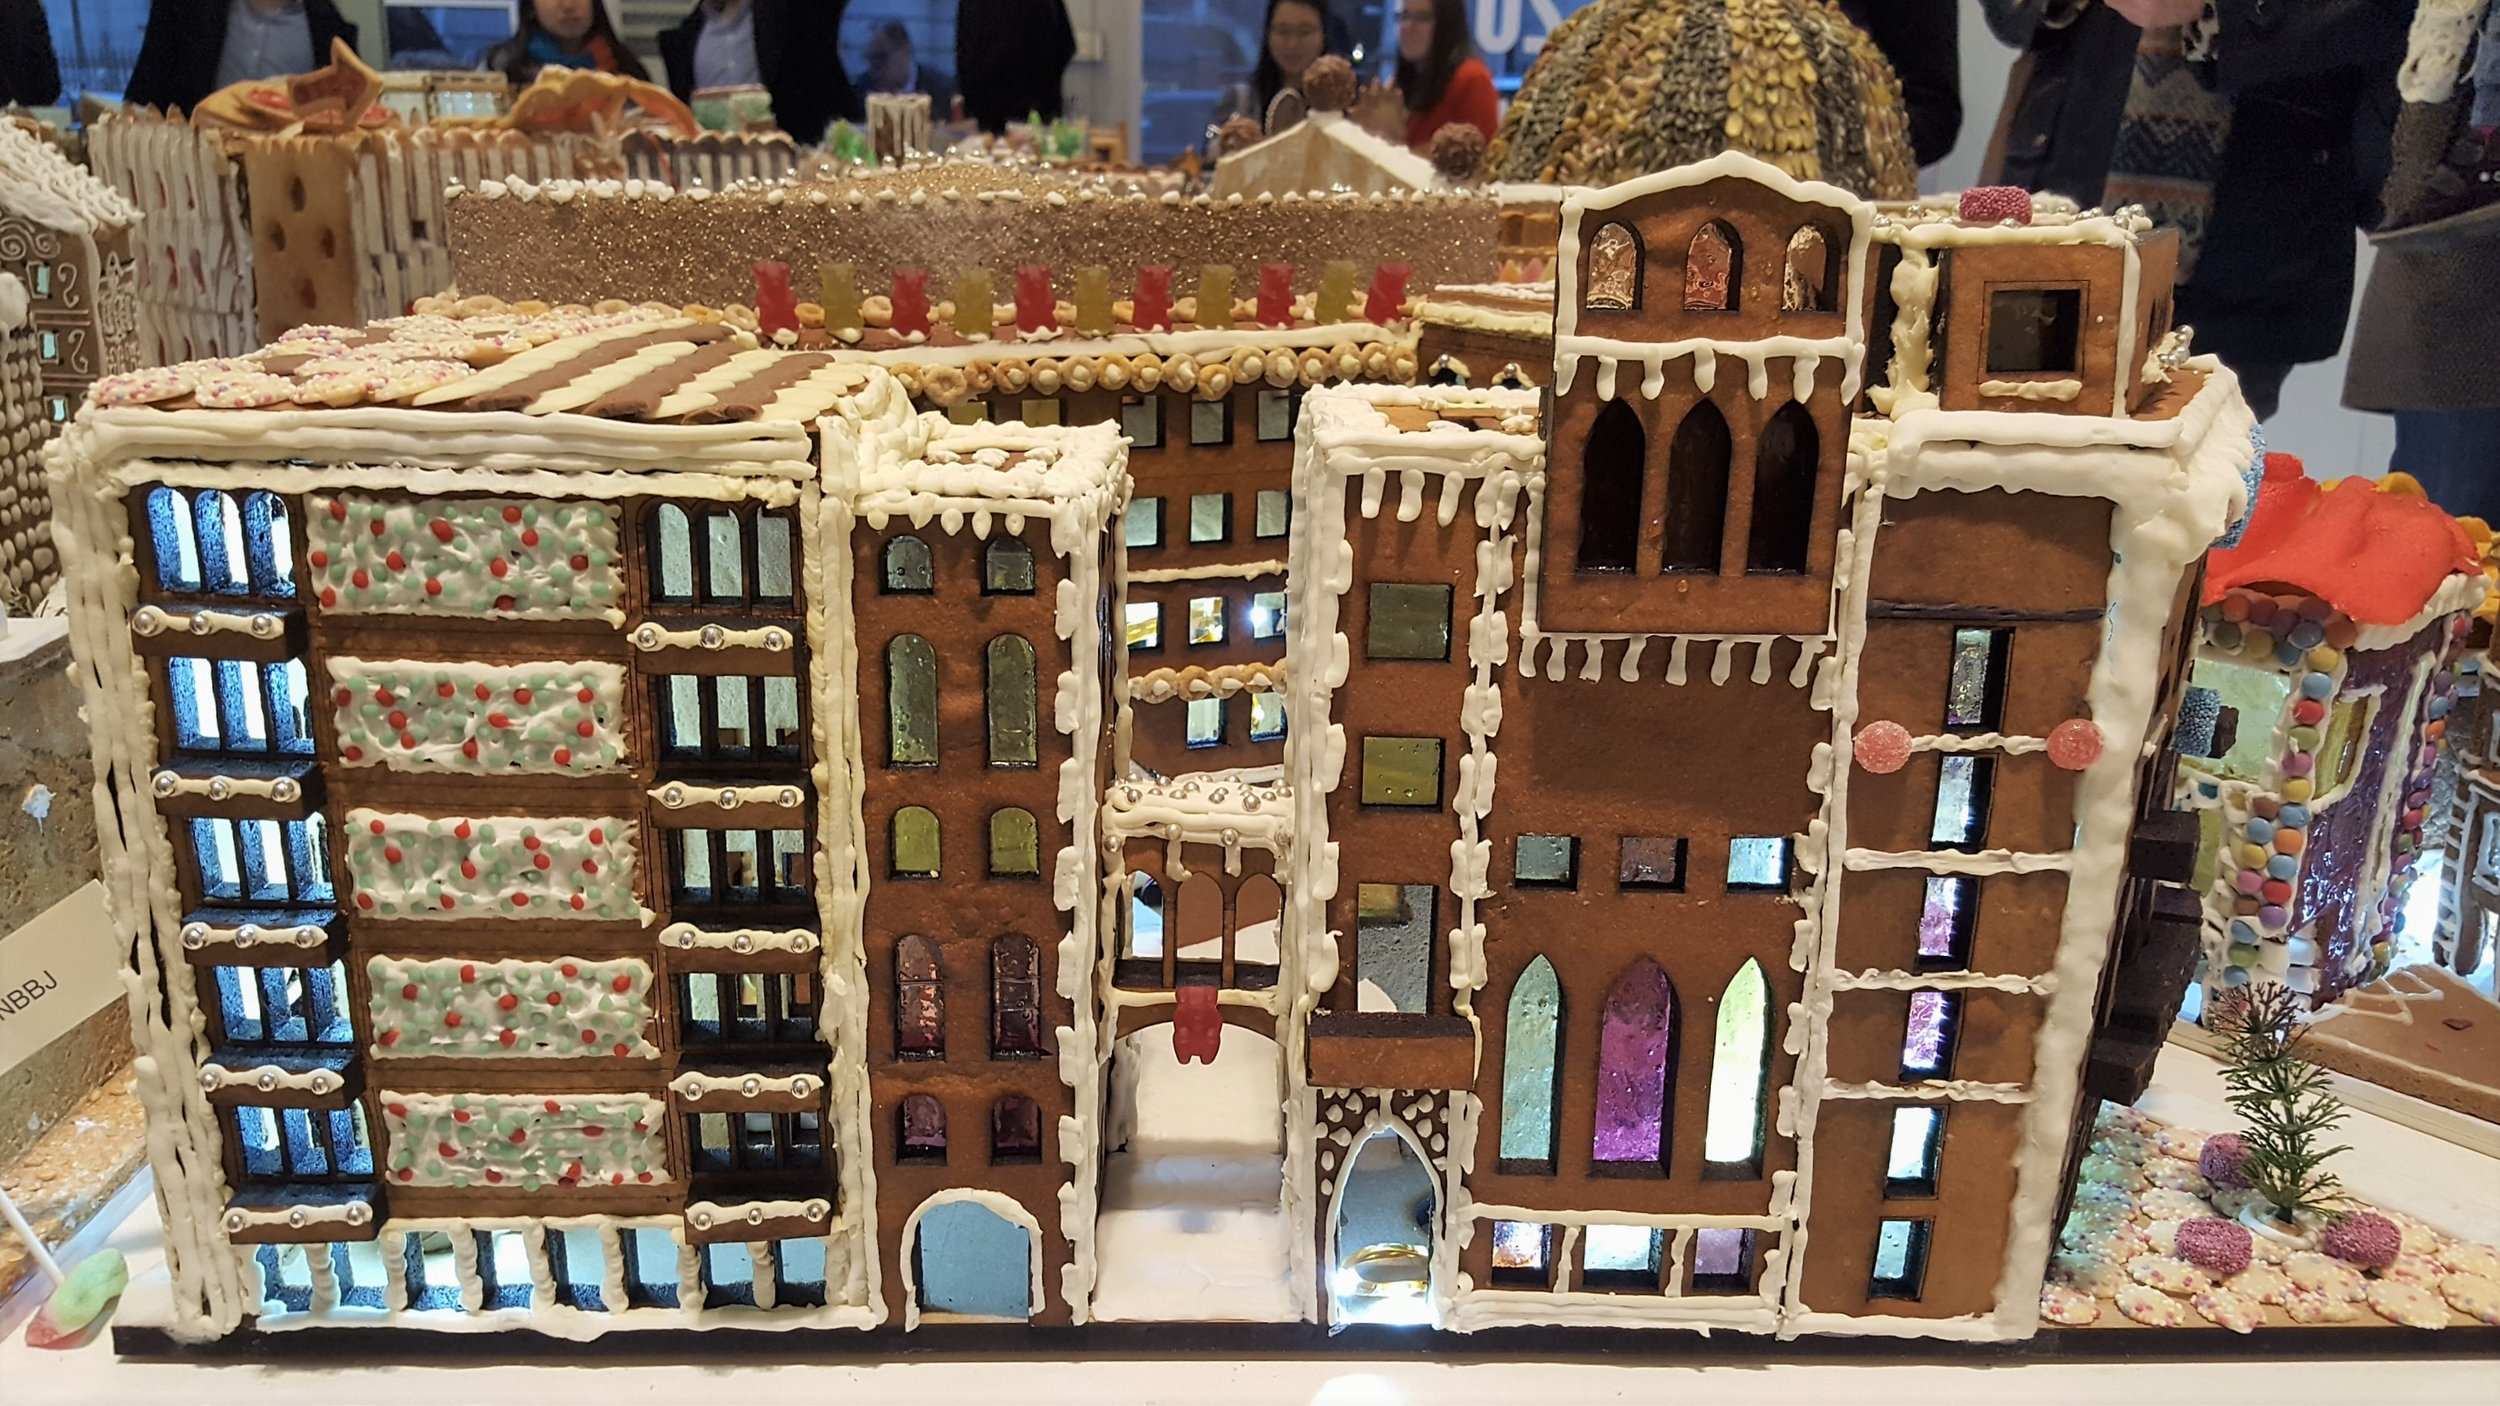 The MoA winner of The Gingerbread City 2016 and most voted by visitors is   NBBJ  !